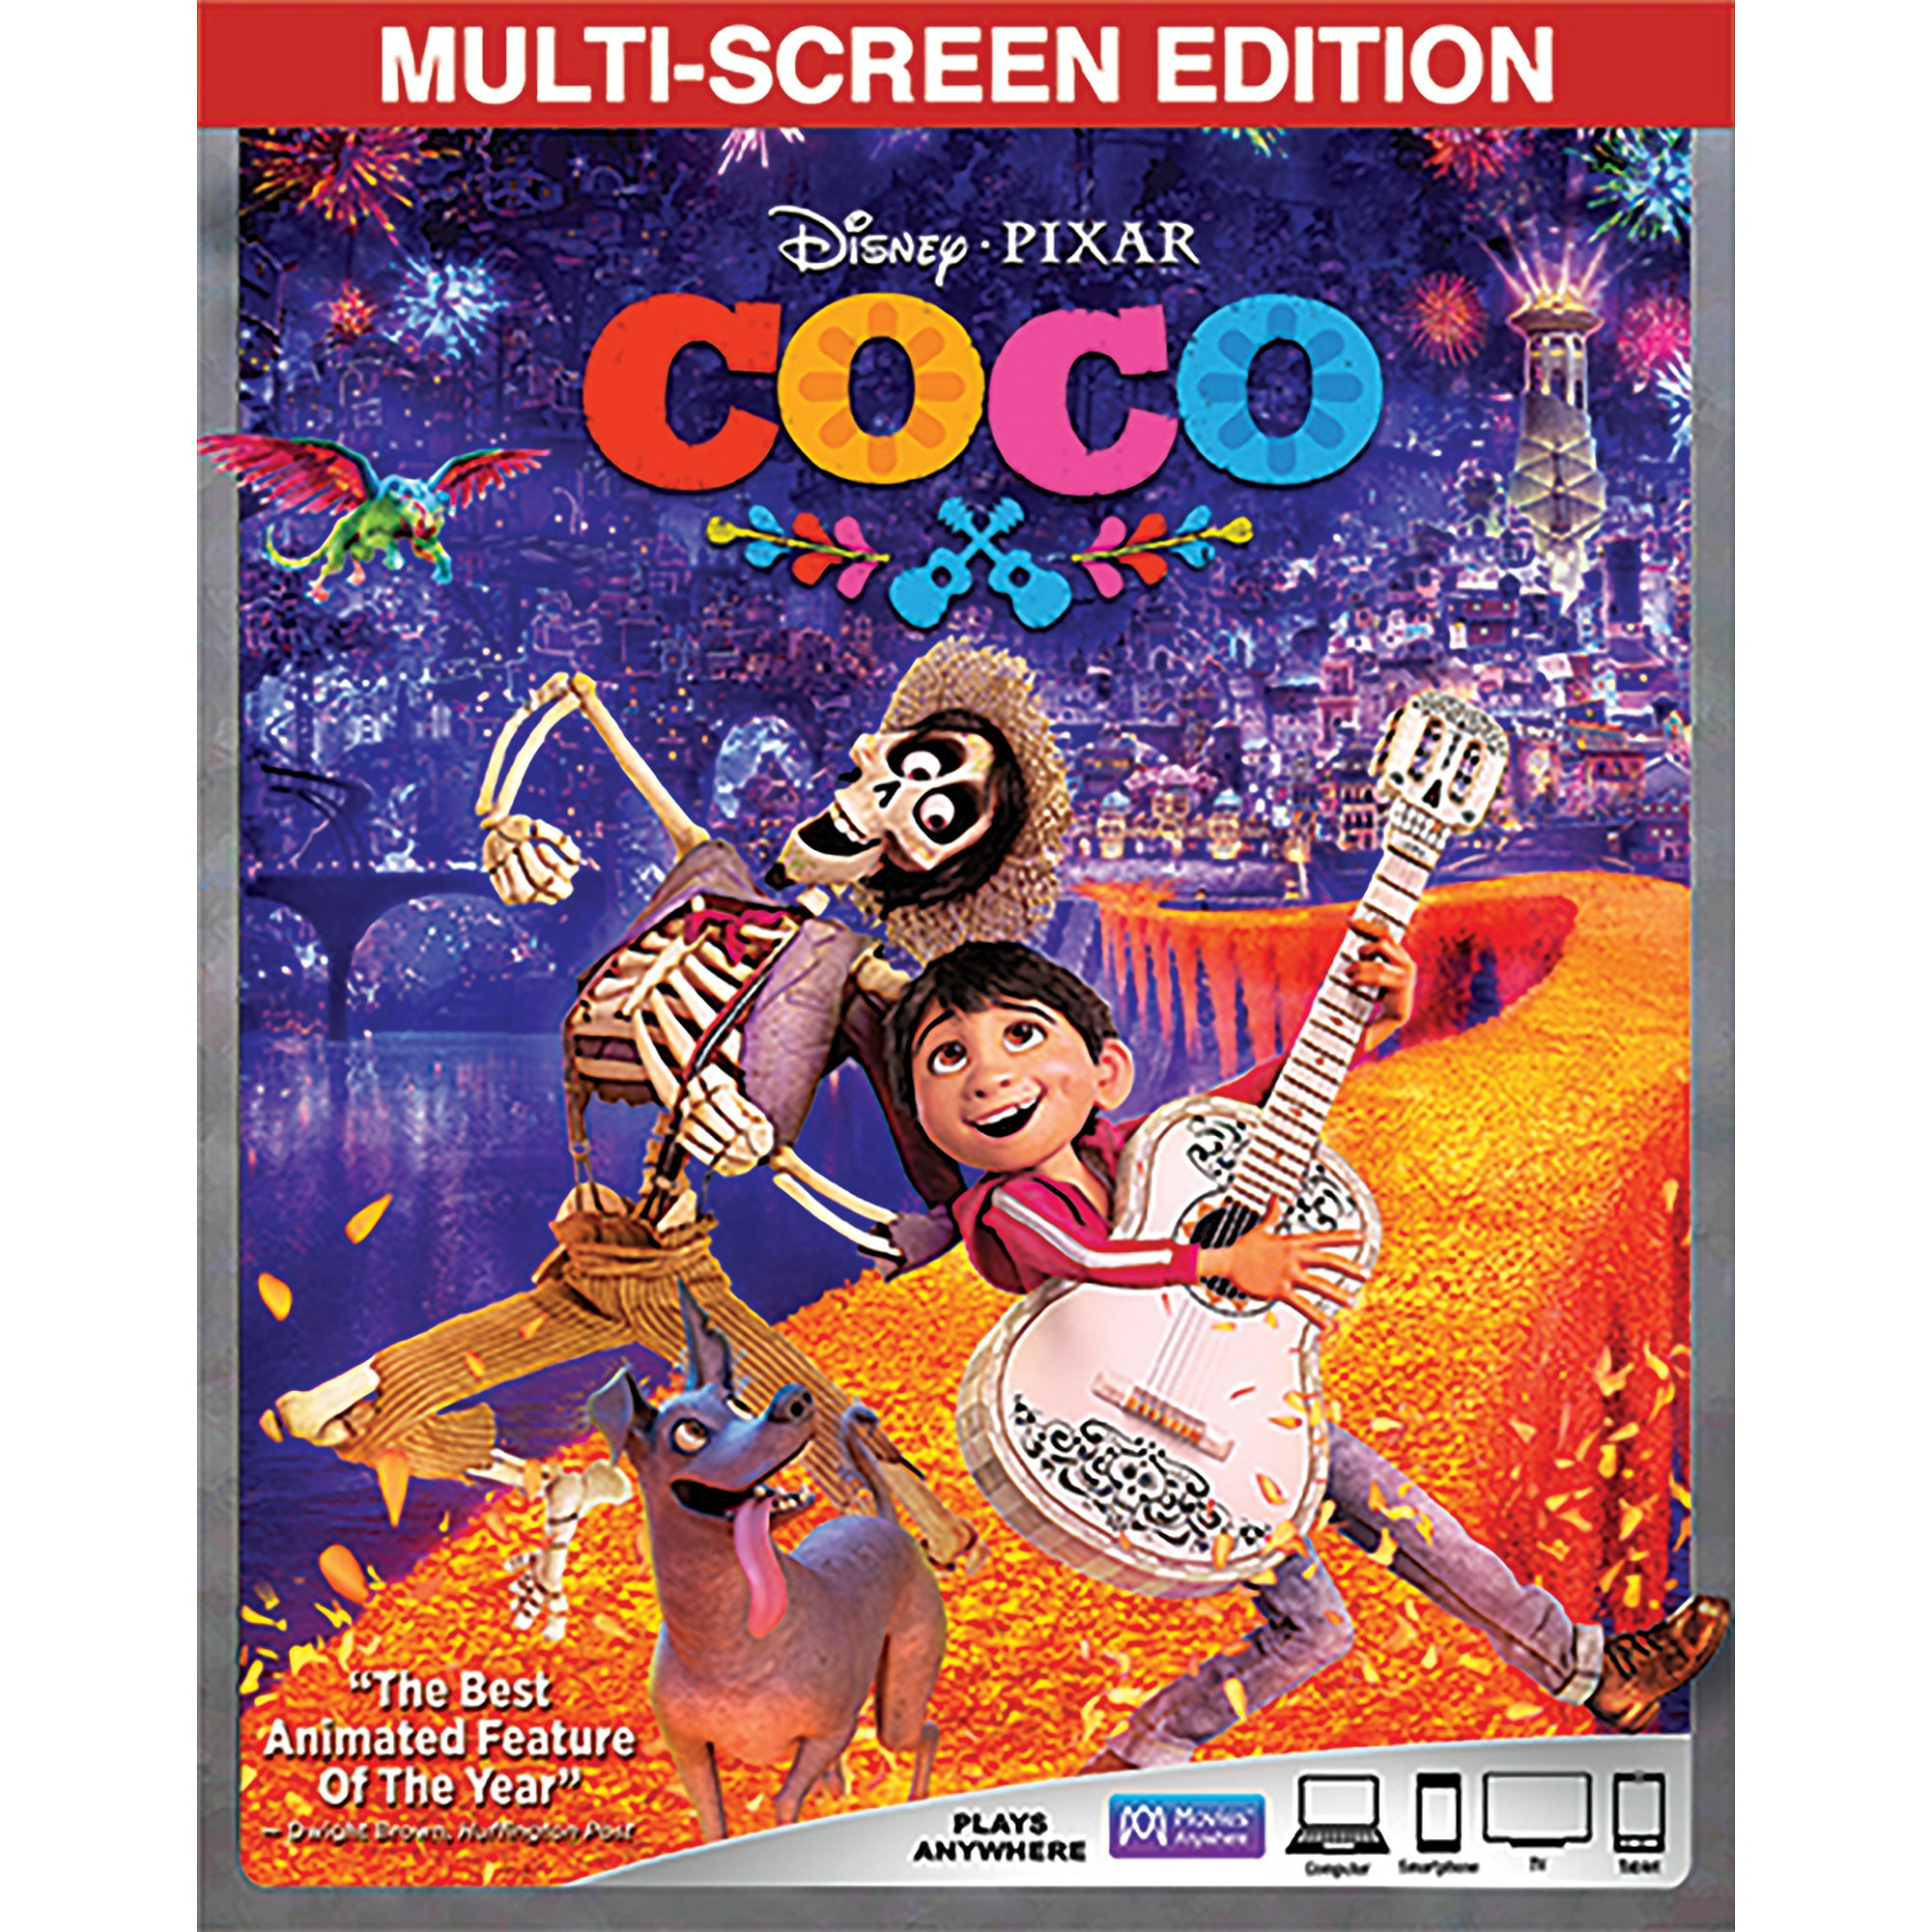 Pre-order Coco Blu-ray Combo Pack Multi-Screen Edition + FREE Lithograph